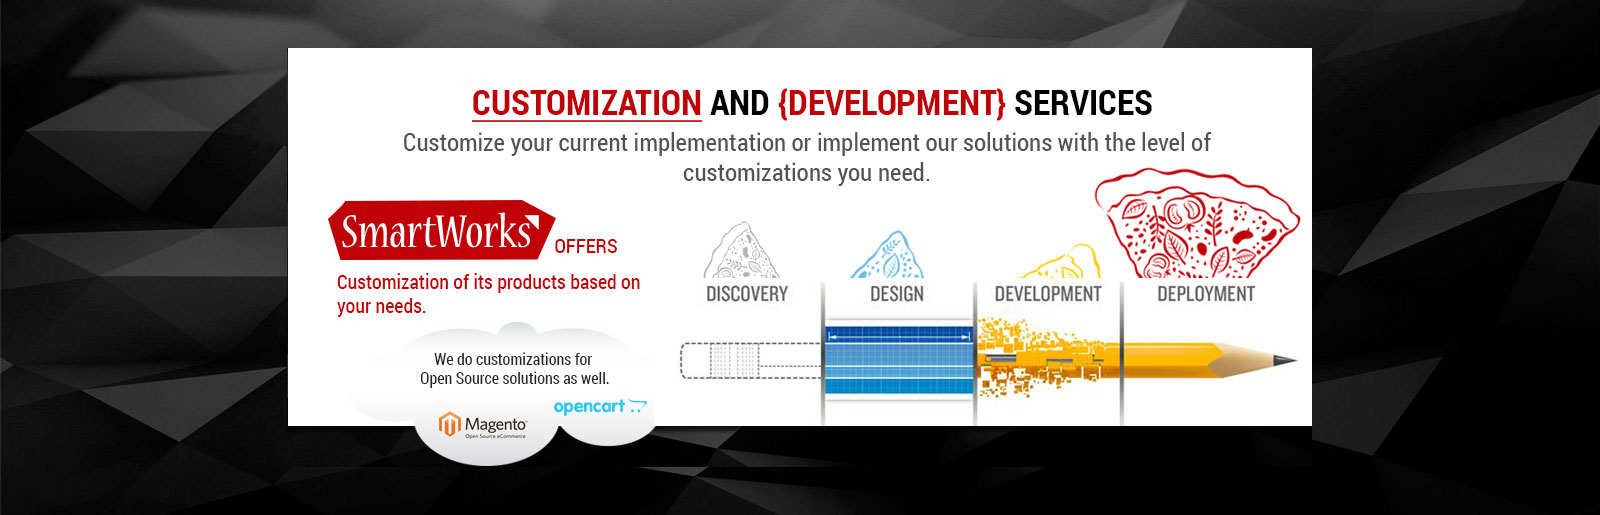 Customization and Development Services